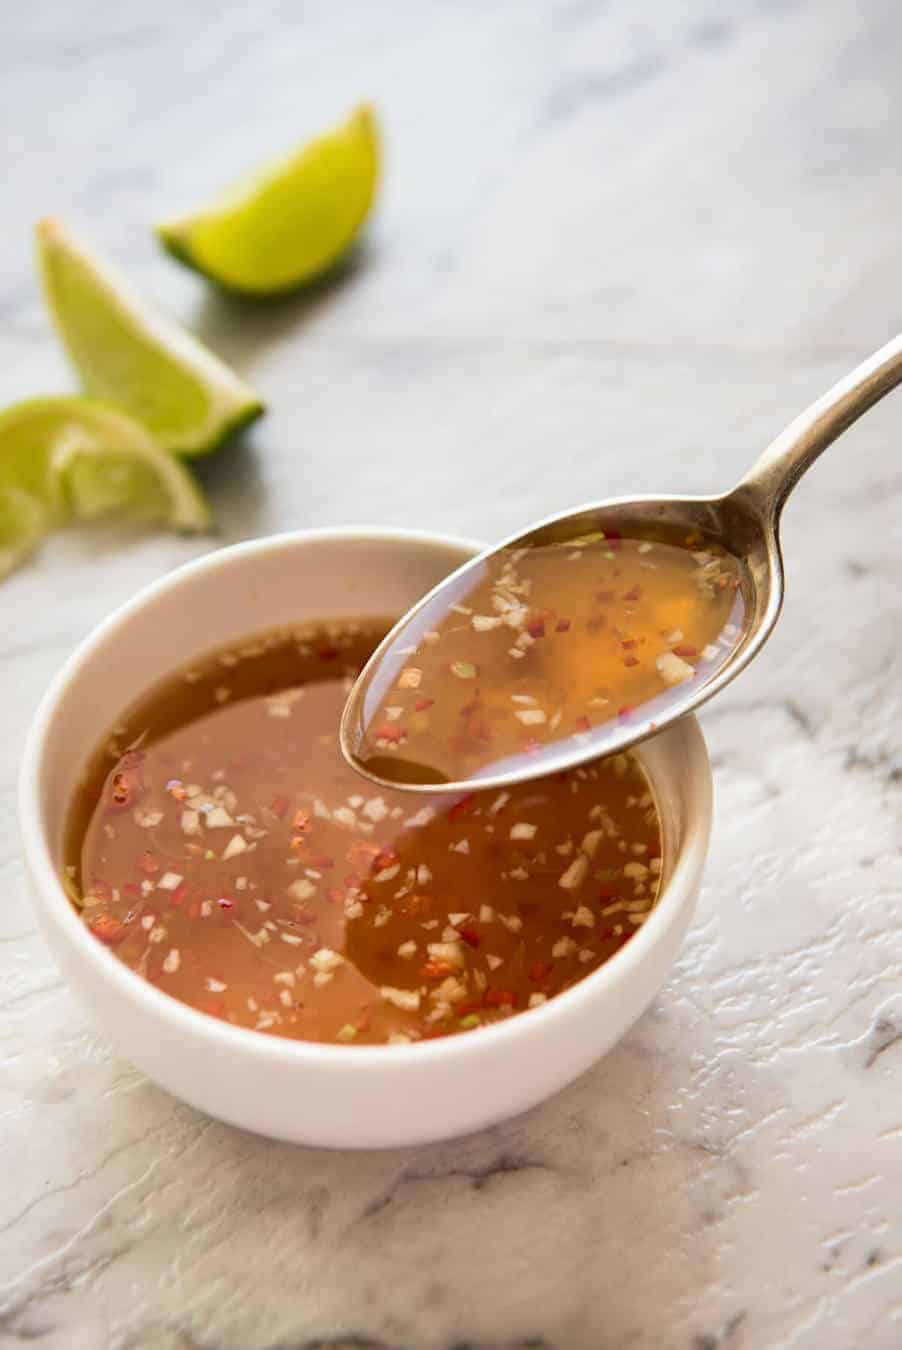 Nuoc Cham (Vietnamese Dipping Sauce) www.recipetineats.com